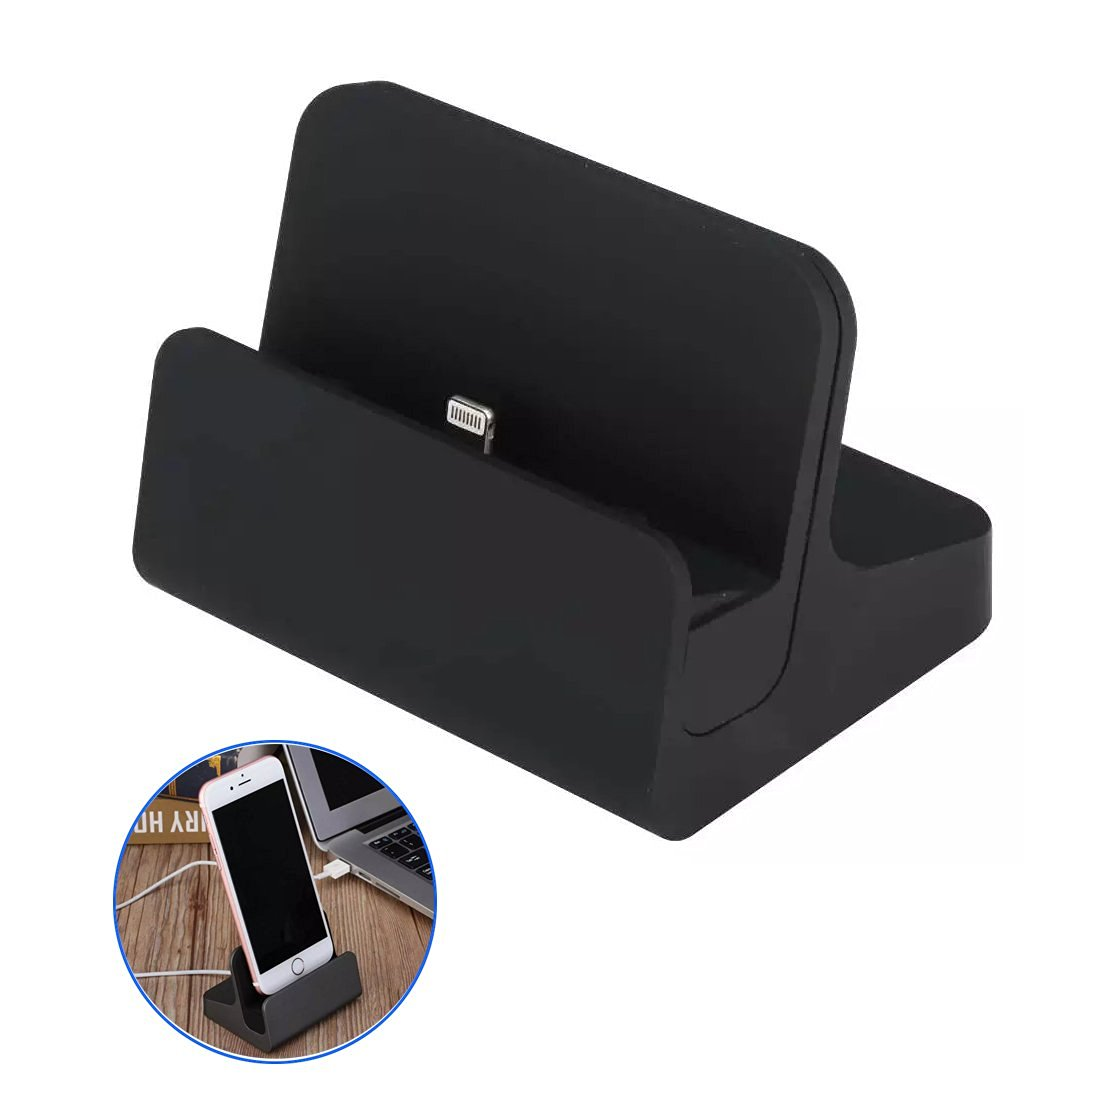 iPhone Charge Dock Cradle - Riipoo Desktop iPhone Charging and Data Sync Transferring Dock, Cradle for iPhone 7,6, 6S, 6 Plus, 5, 5S, 5C, iPad Mini, iPod Touch (Black)